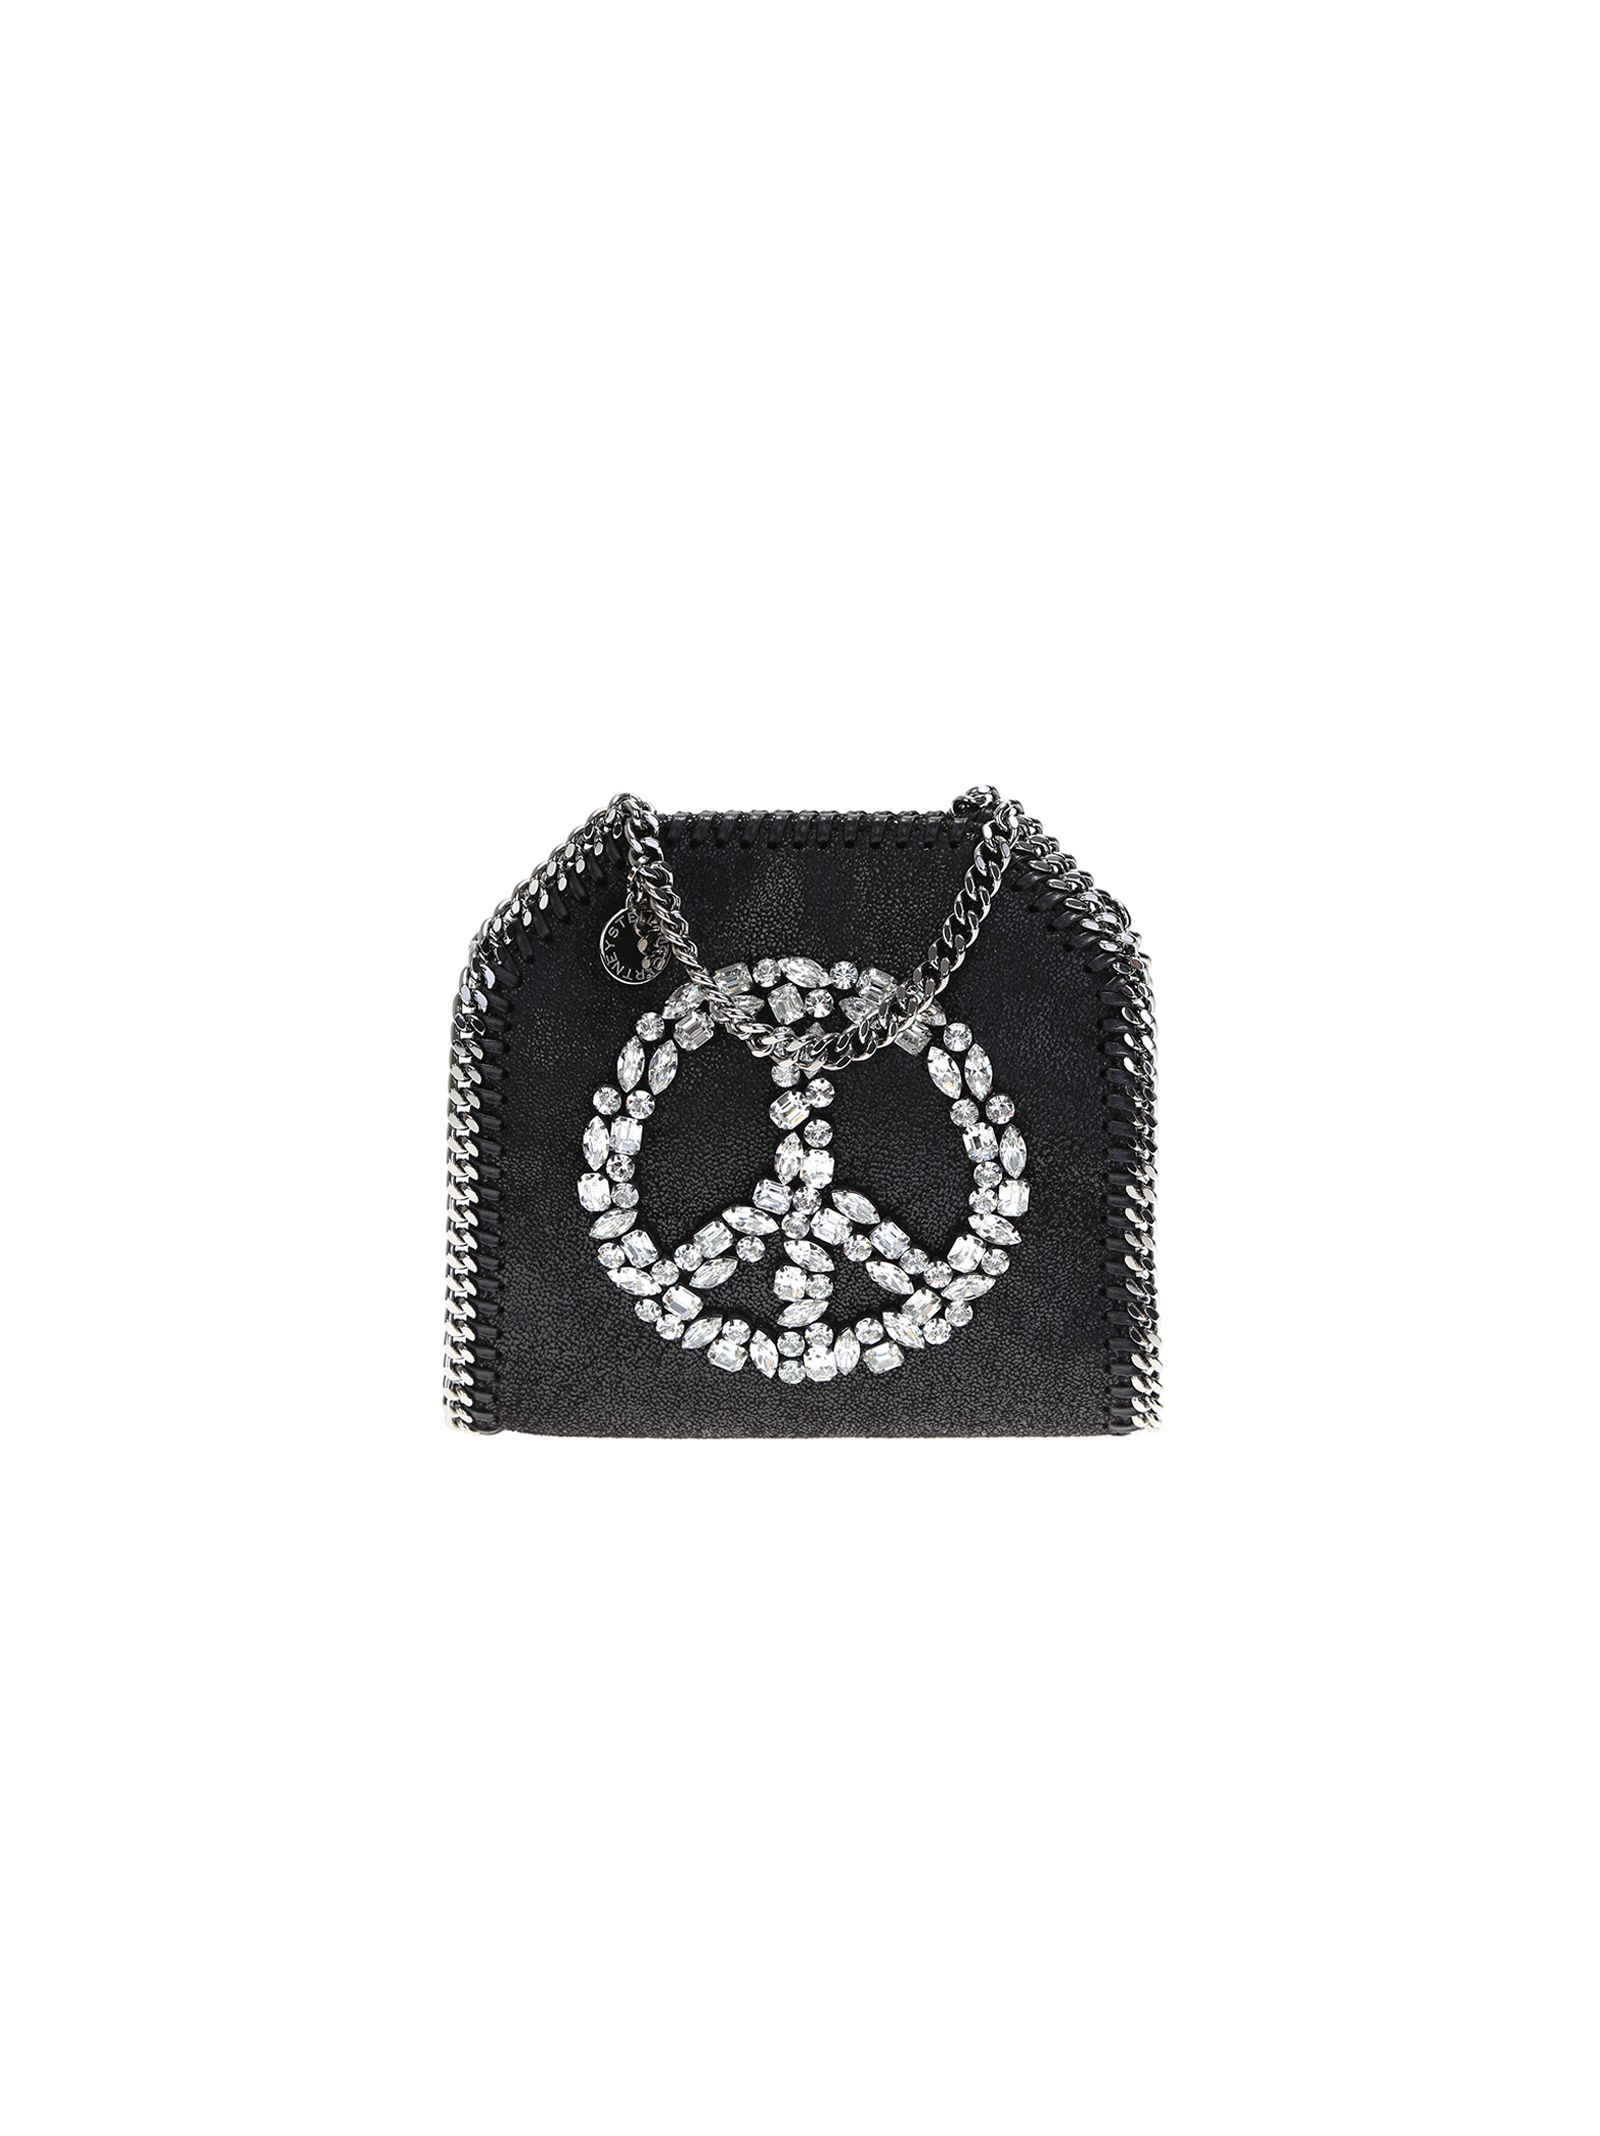 stella mccartney female black falabella tiny bag with crystals peace sign